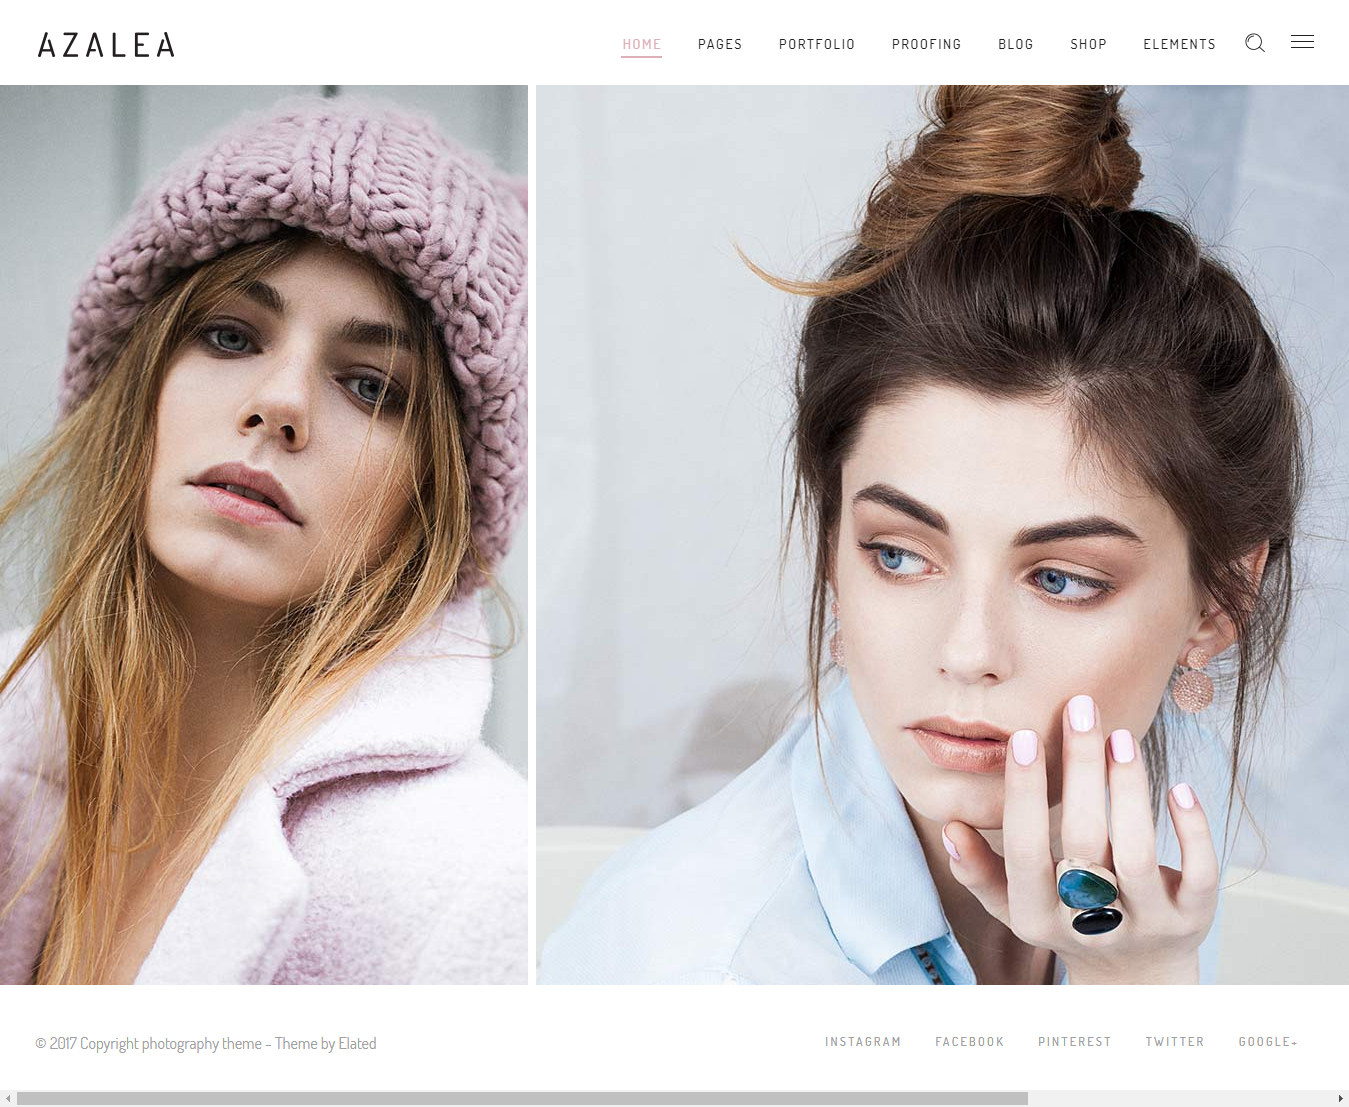 Azalea - Best Premium Fashion WordPress Themes